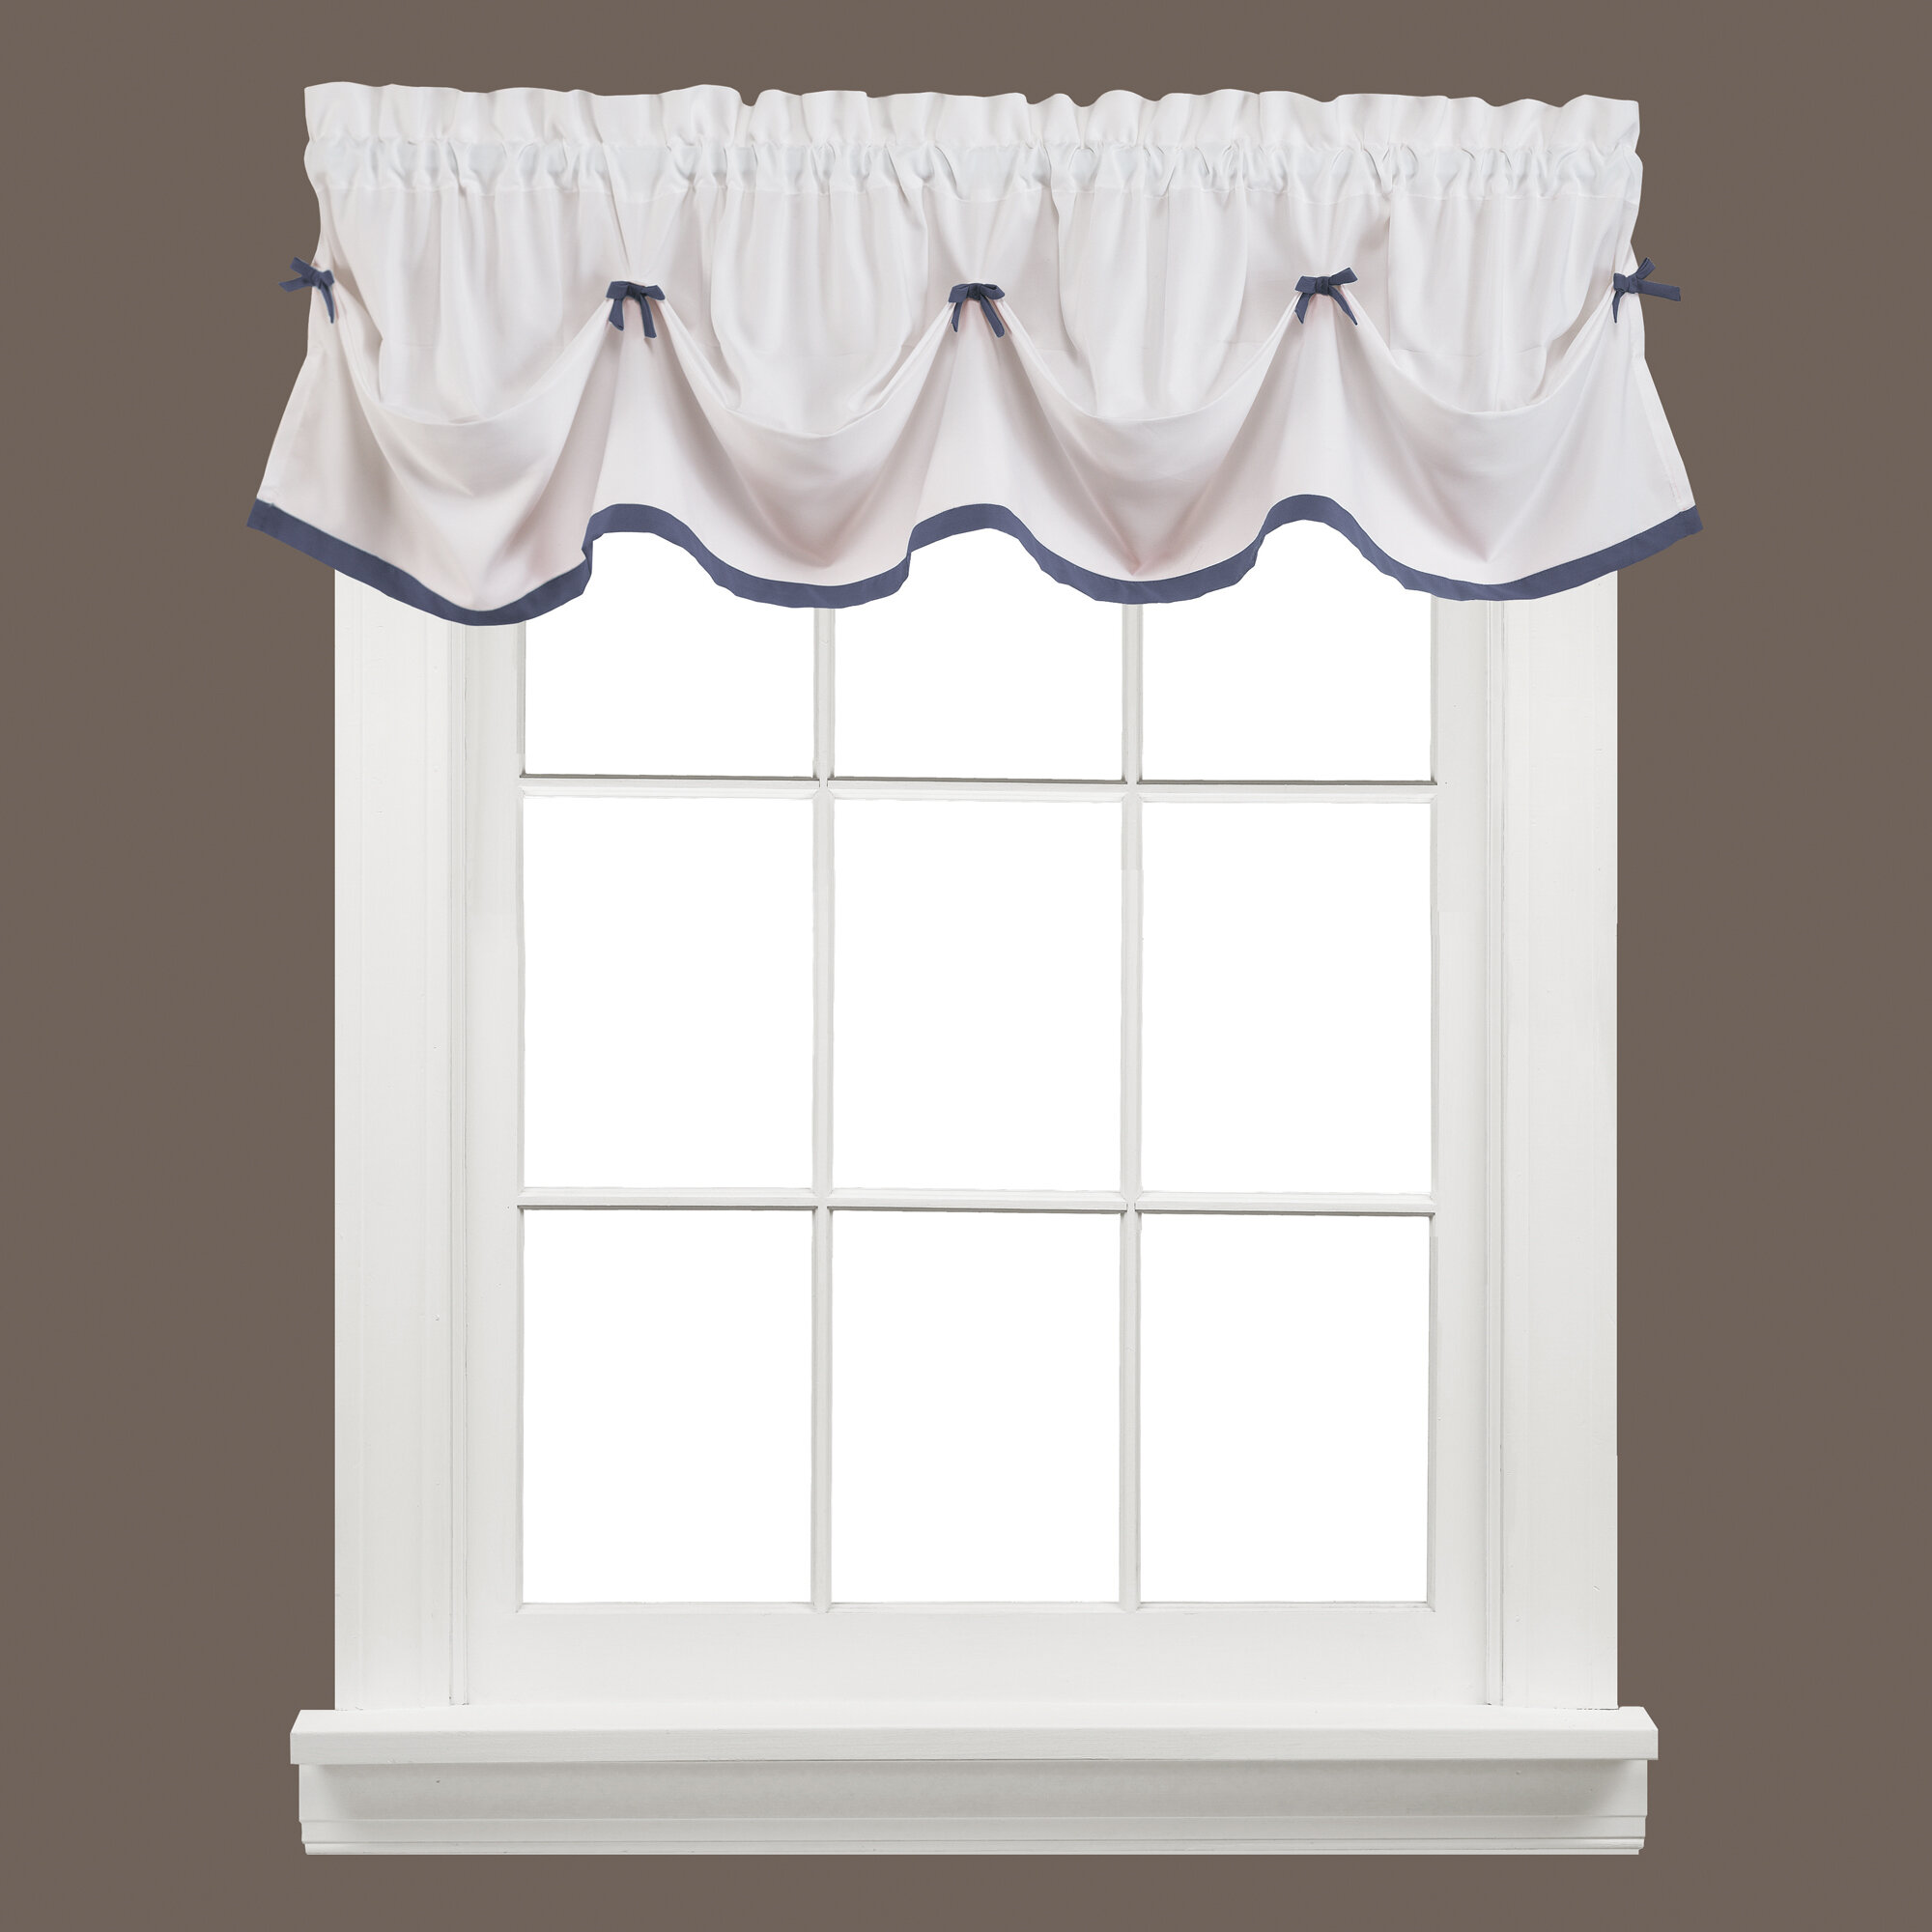 workroom treatments window toronto professional designer a and valance to existing functional blinds adding valances detail even new drapery play addition as well or treatment in products role standalone